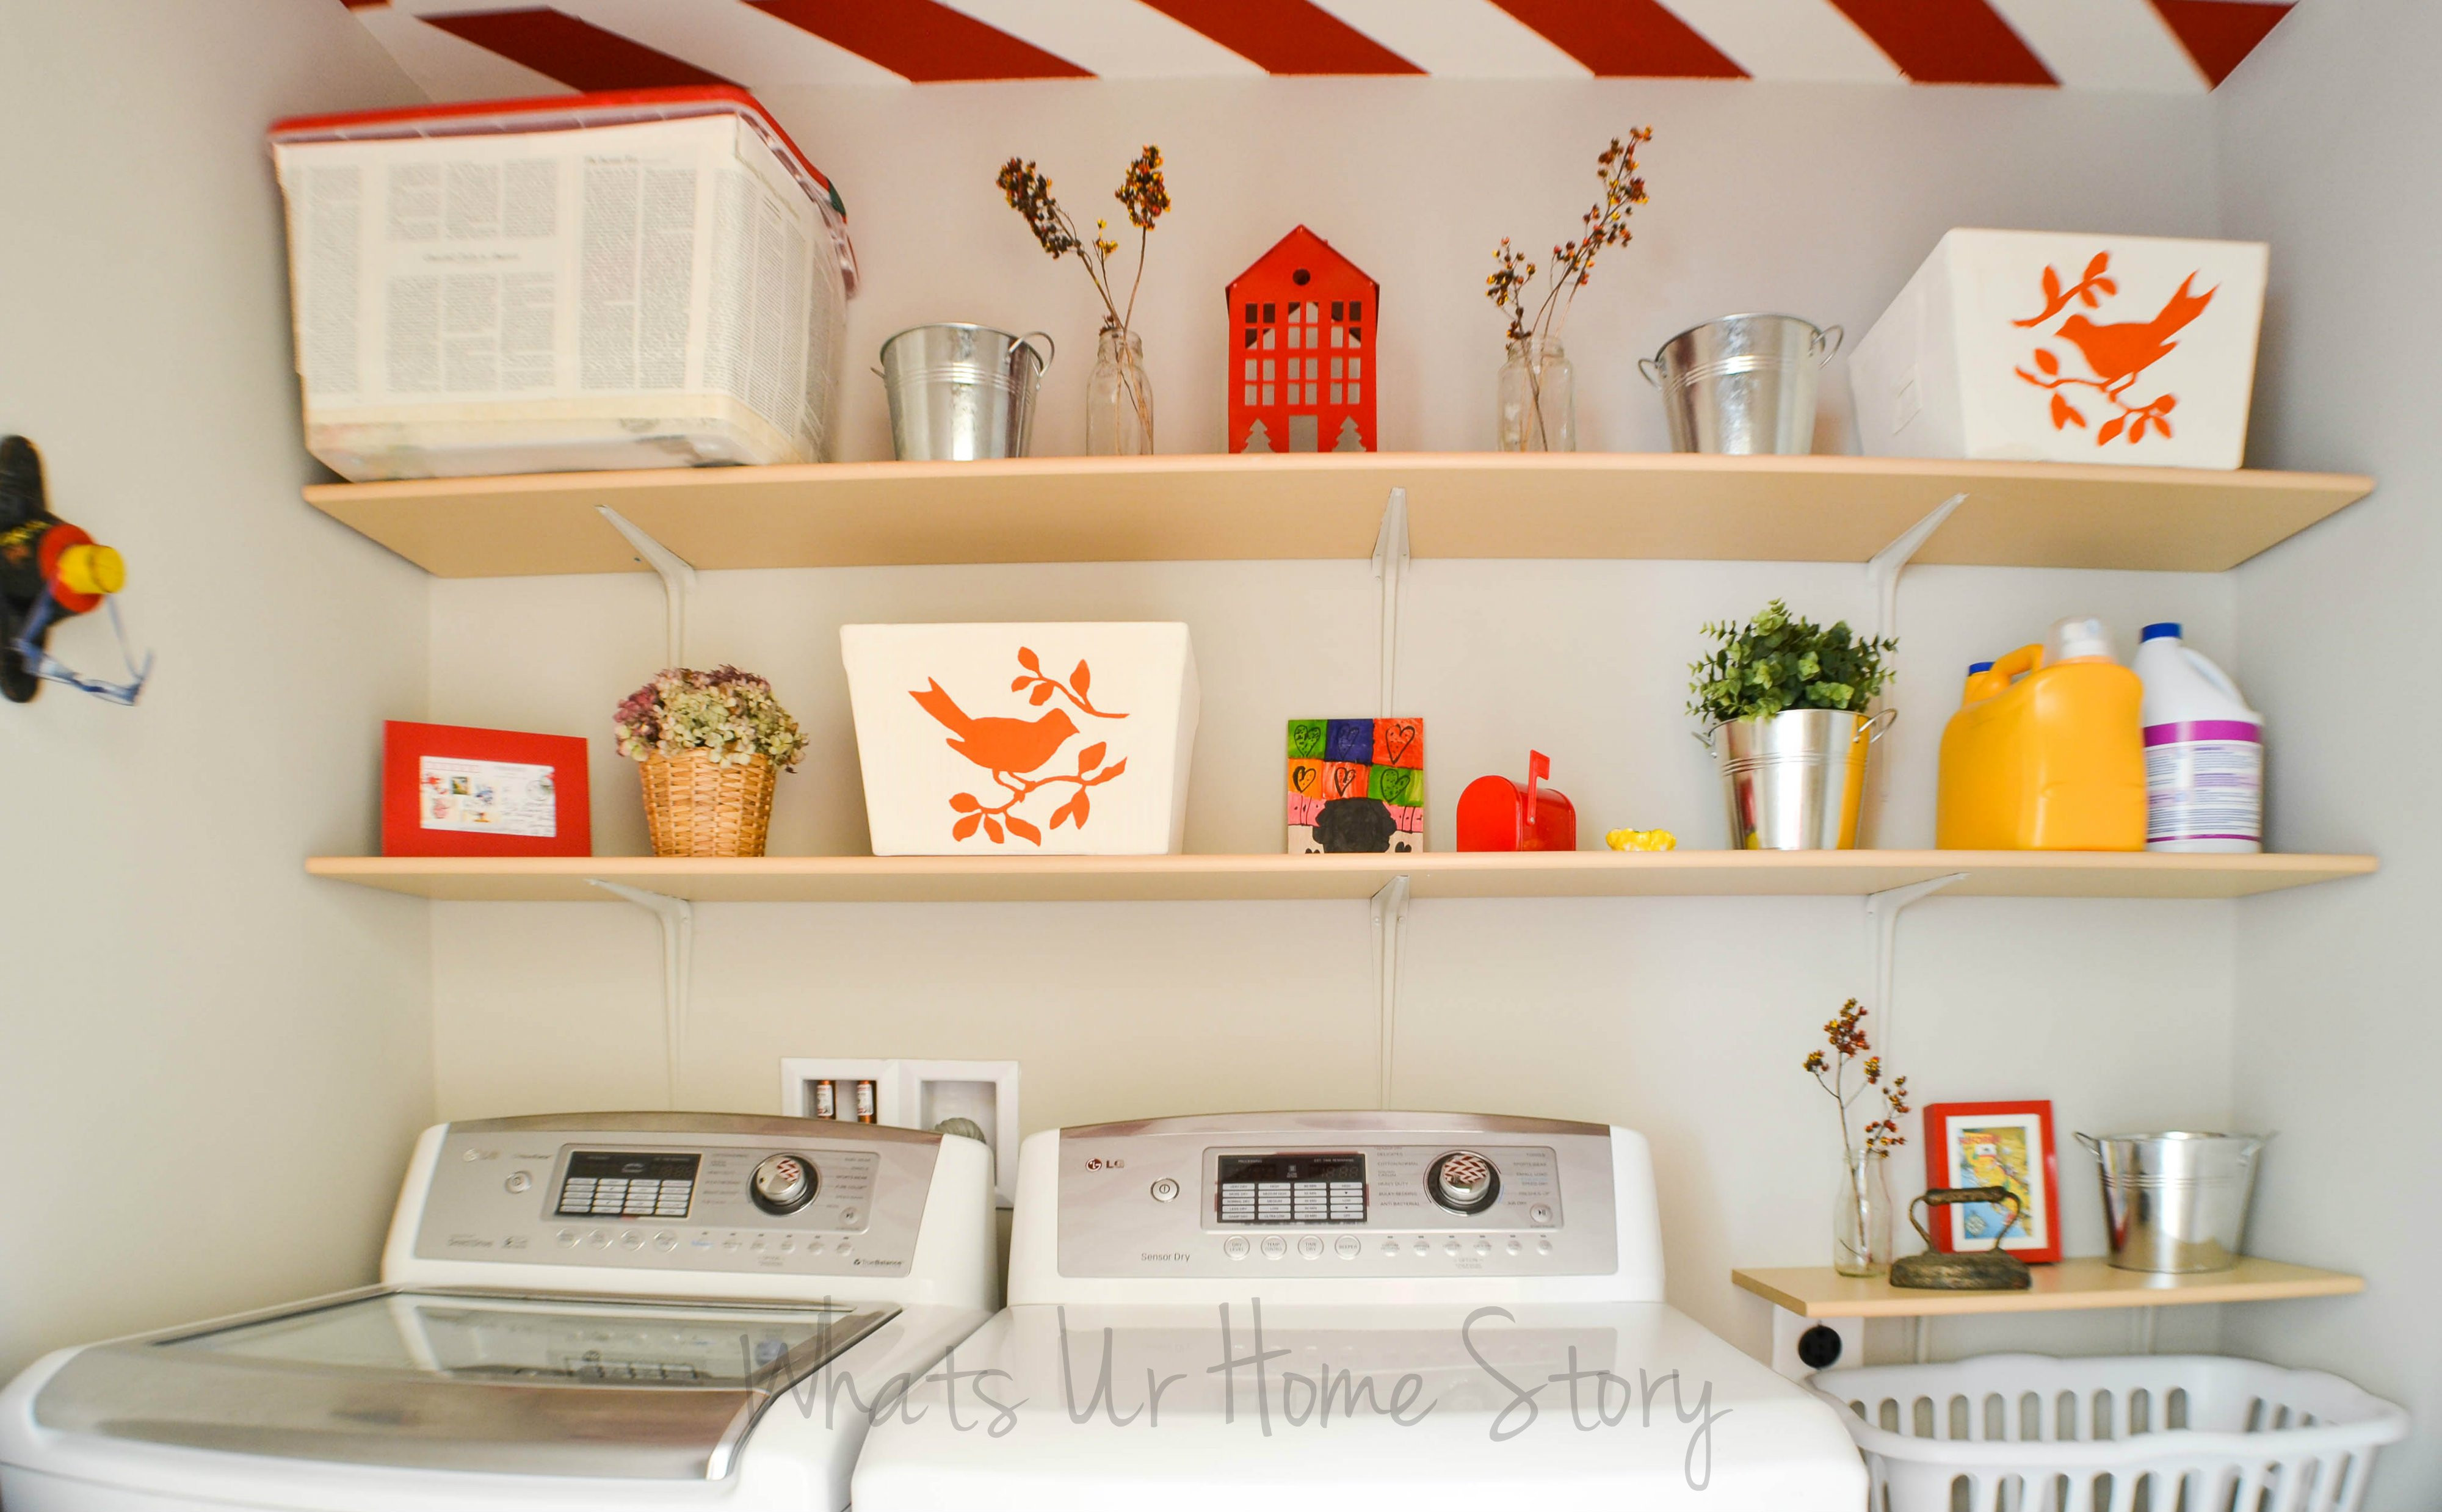 Best ideas about Diy Laundry Room Shelves . Save or Pin Simple DIY Wall Shelves for the Laundry Room Now.